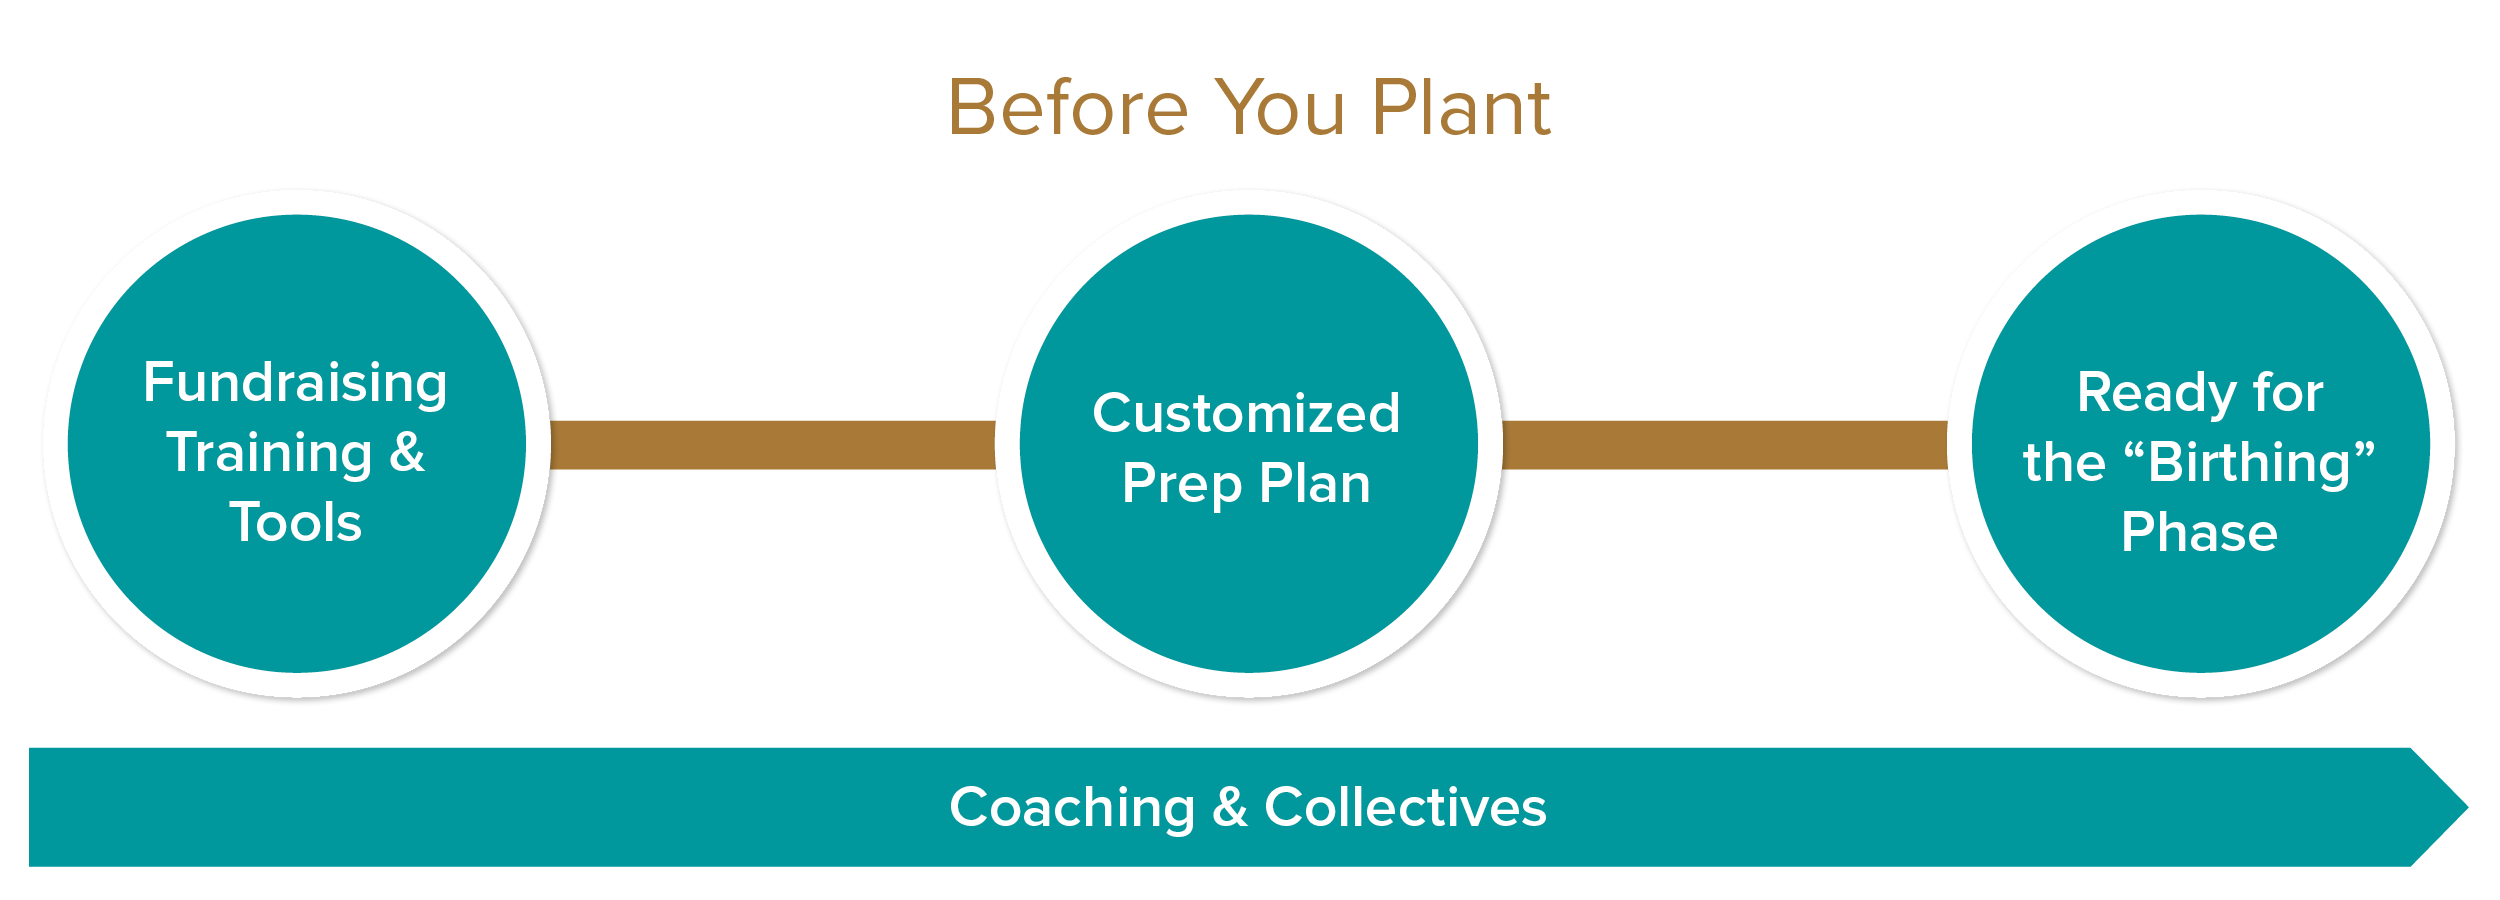 """equipping 1: Before you plant    fundraising training & Tools:   includes....SENT's fundraising training course, adaptable tools to help you cast vision & raise funds until you have giving partners pledging enough to meet your planting budget. we will help you start off on healthy financial footing.   customized prep plan:   include...custom Prep plan that's personalized to prepare your head, heart, & hands toward planting a gospel-centered church more fruitfully. Given your Customized Prep plan, we will provide ways to develop and recommend the best combination of learning venues to do so.   COACHING & COLLECTIVES:   INCLUDEs...TOOLS FOR you and your COACH TO USE TOGETHER so you REACH IMPORTANT GOALS & MILESTONES as you prepare to plant. Training modules are provided along with Residencies (brief or extended) where you will be sharpened through your mentoring by veteran pastors & planters. COLLECTIVES each month provide a peer group for encouragement, prayer, & training that's helpful no matter what phase of planting one is in.    Ready for the """"birthing"""" phase:   includes...a tool with tangible action items for the early days of birthing a church. You will receive a time-tested sequence for starting well so you set Gospel dna wisely with your initial core members. this tool helps you lay the foundation to start well so the church plant bears fruit for years to come."""